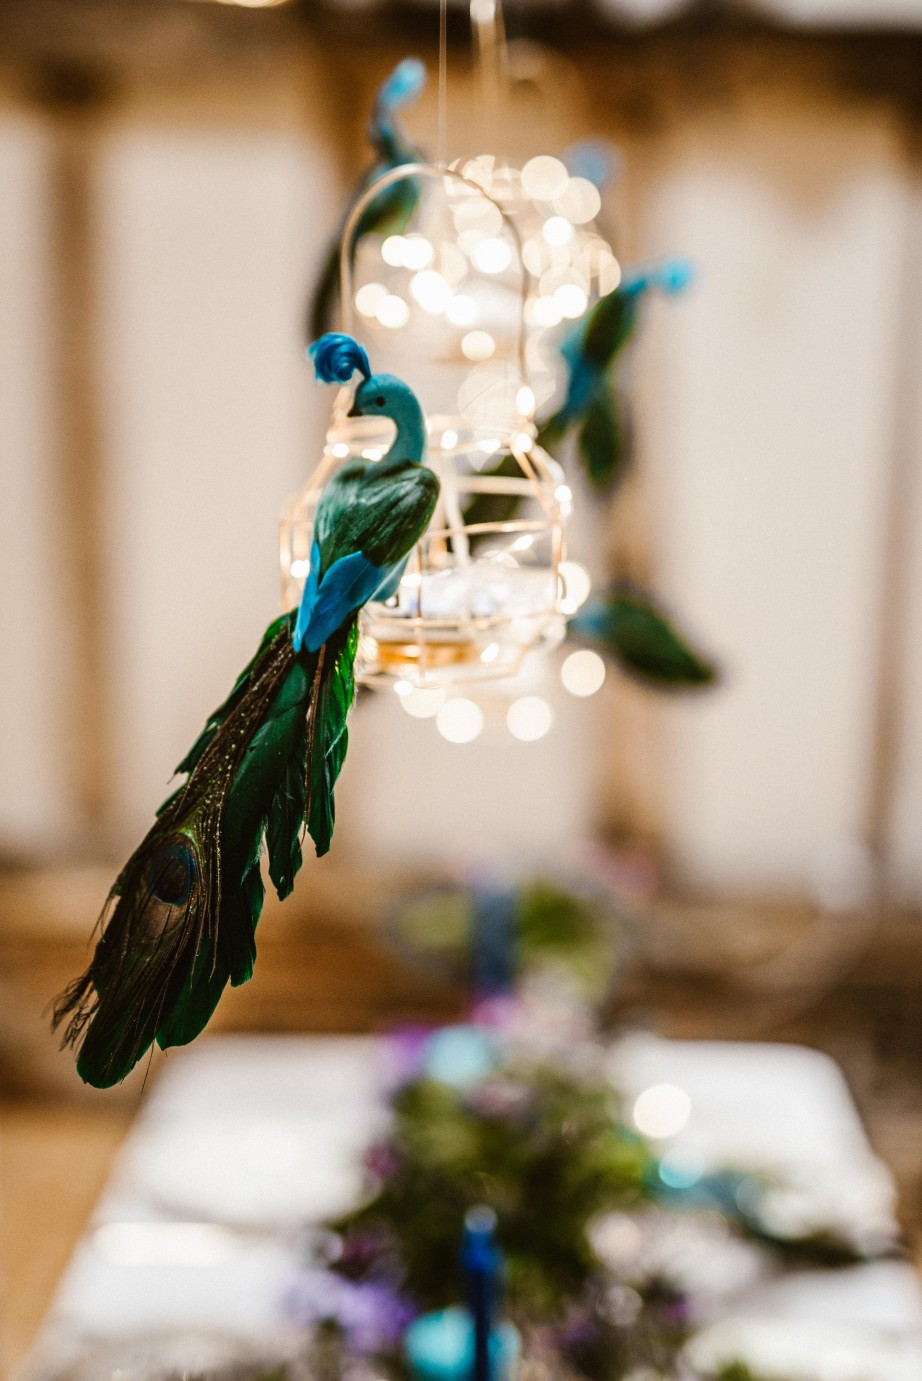 Peacock barns - alternative unconventional wedding photoshoot - rustic decadent - peacock hanging detail